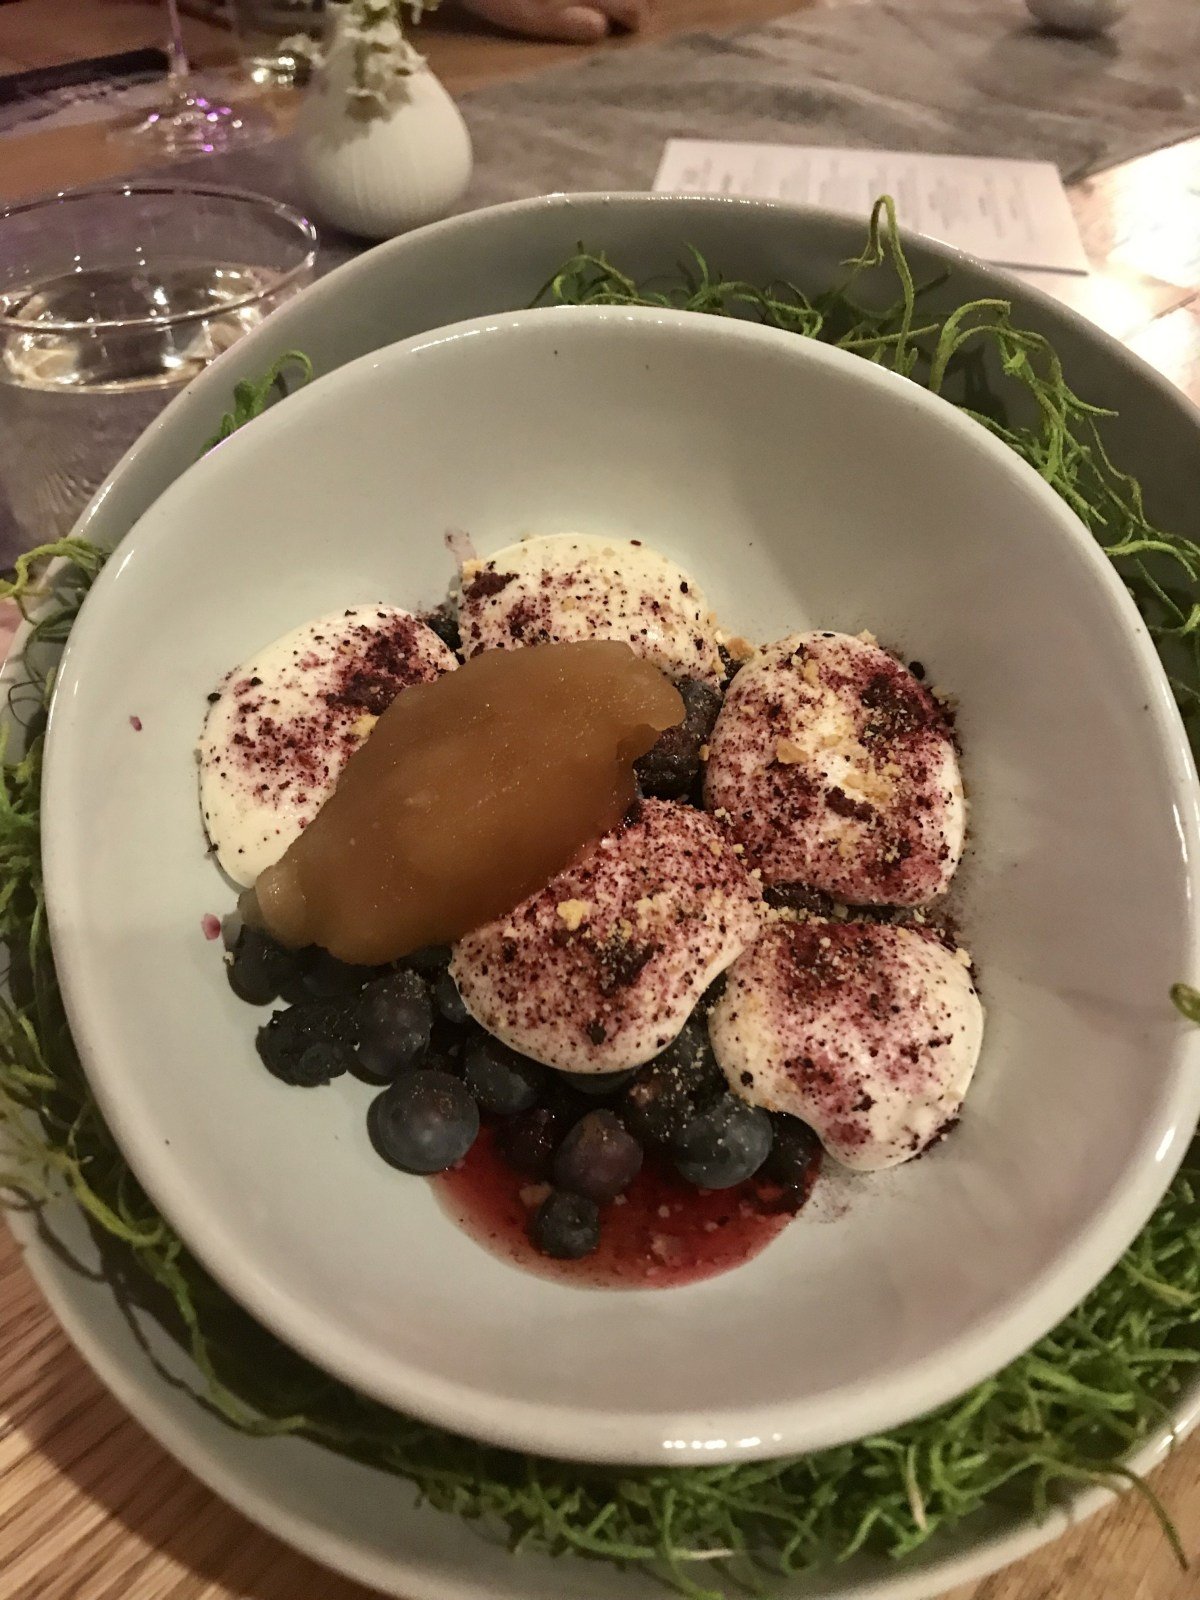 Blueberry Fields with root beer granita; Credit: Michele Stueven